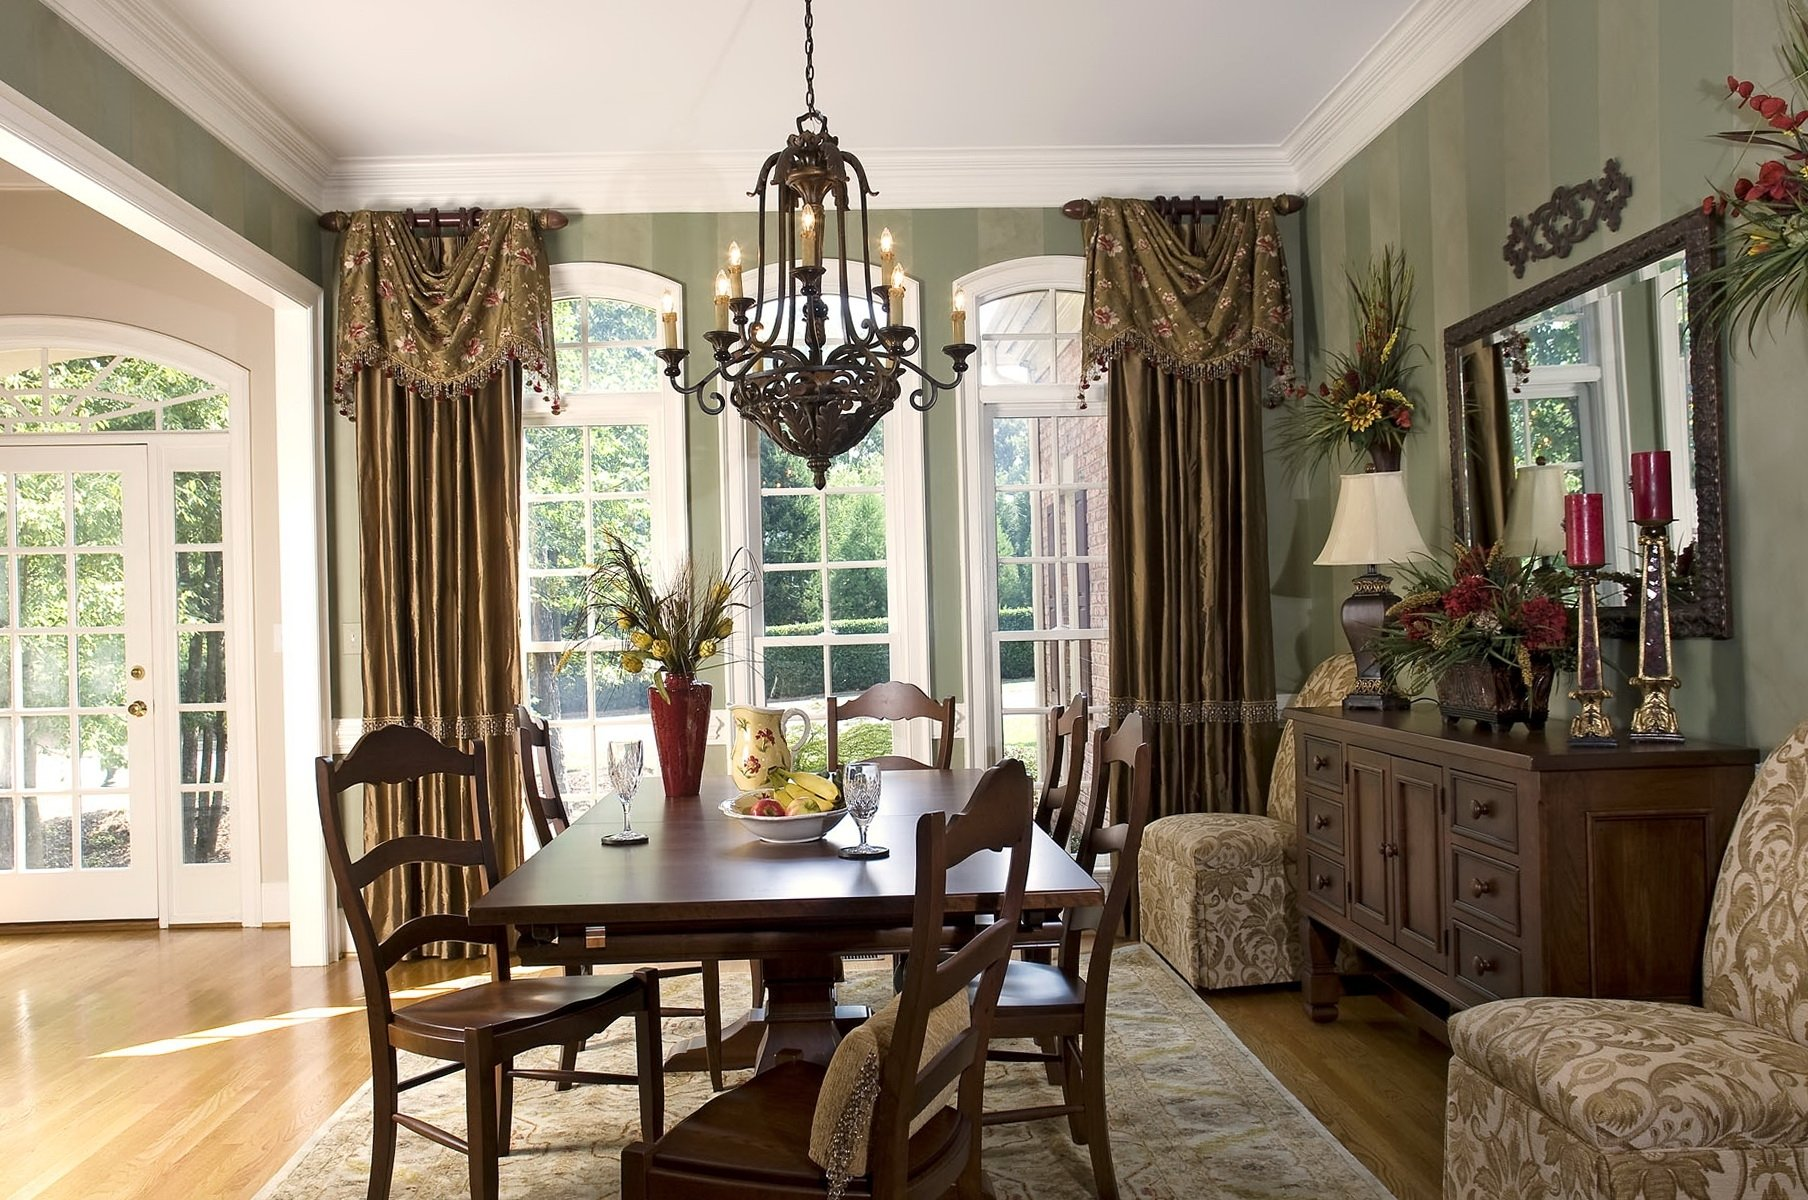 10 Wonderful Curtains For Dining Room Ideas formal dining room curtain ideas ideas of curtains for dining room 2020